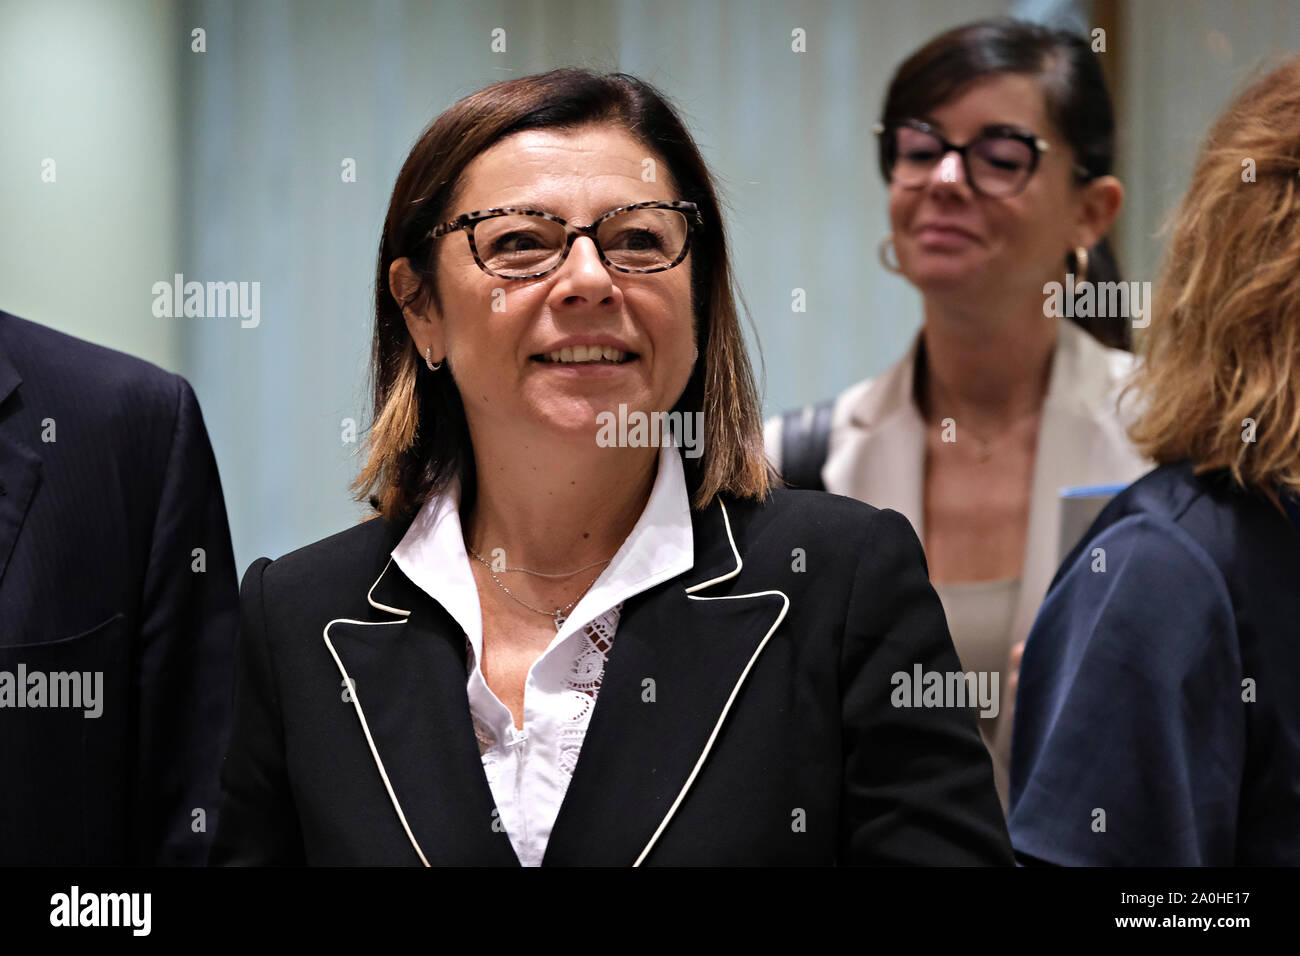 Brussels, Belgium. 20th September 2019.  Paola De Micheli, Minister of Infrastructures and Transport of Italy during an European Transport, Telecommunications and Energy (TTE) Council. Credit: ALEXANDROS MICHAILIDIS/Alamy Live News Stock Photo